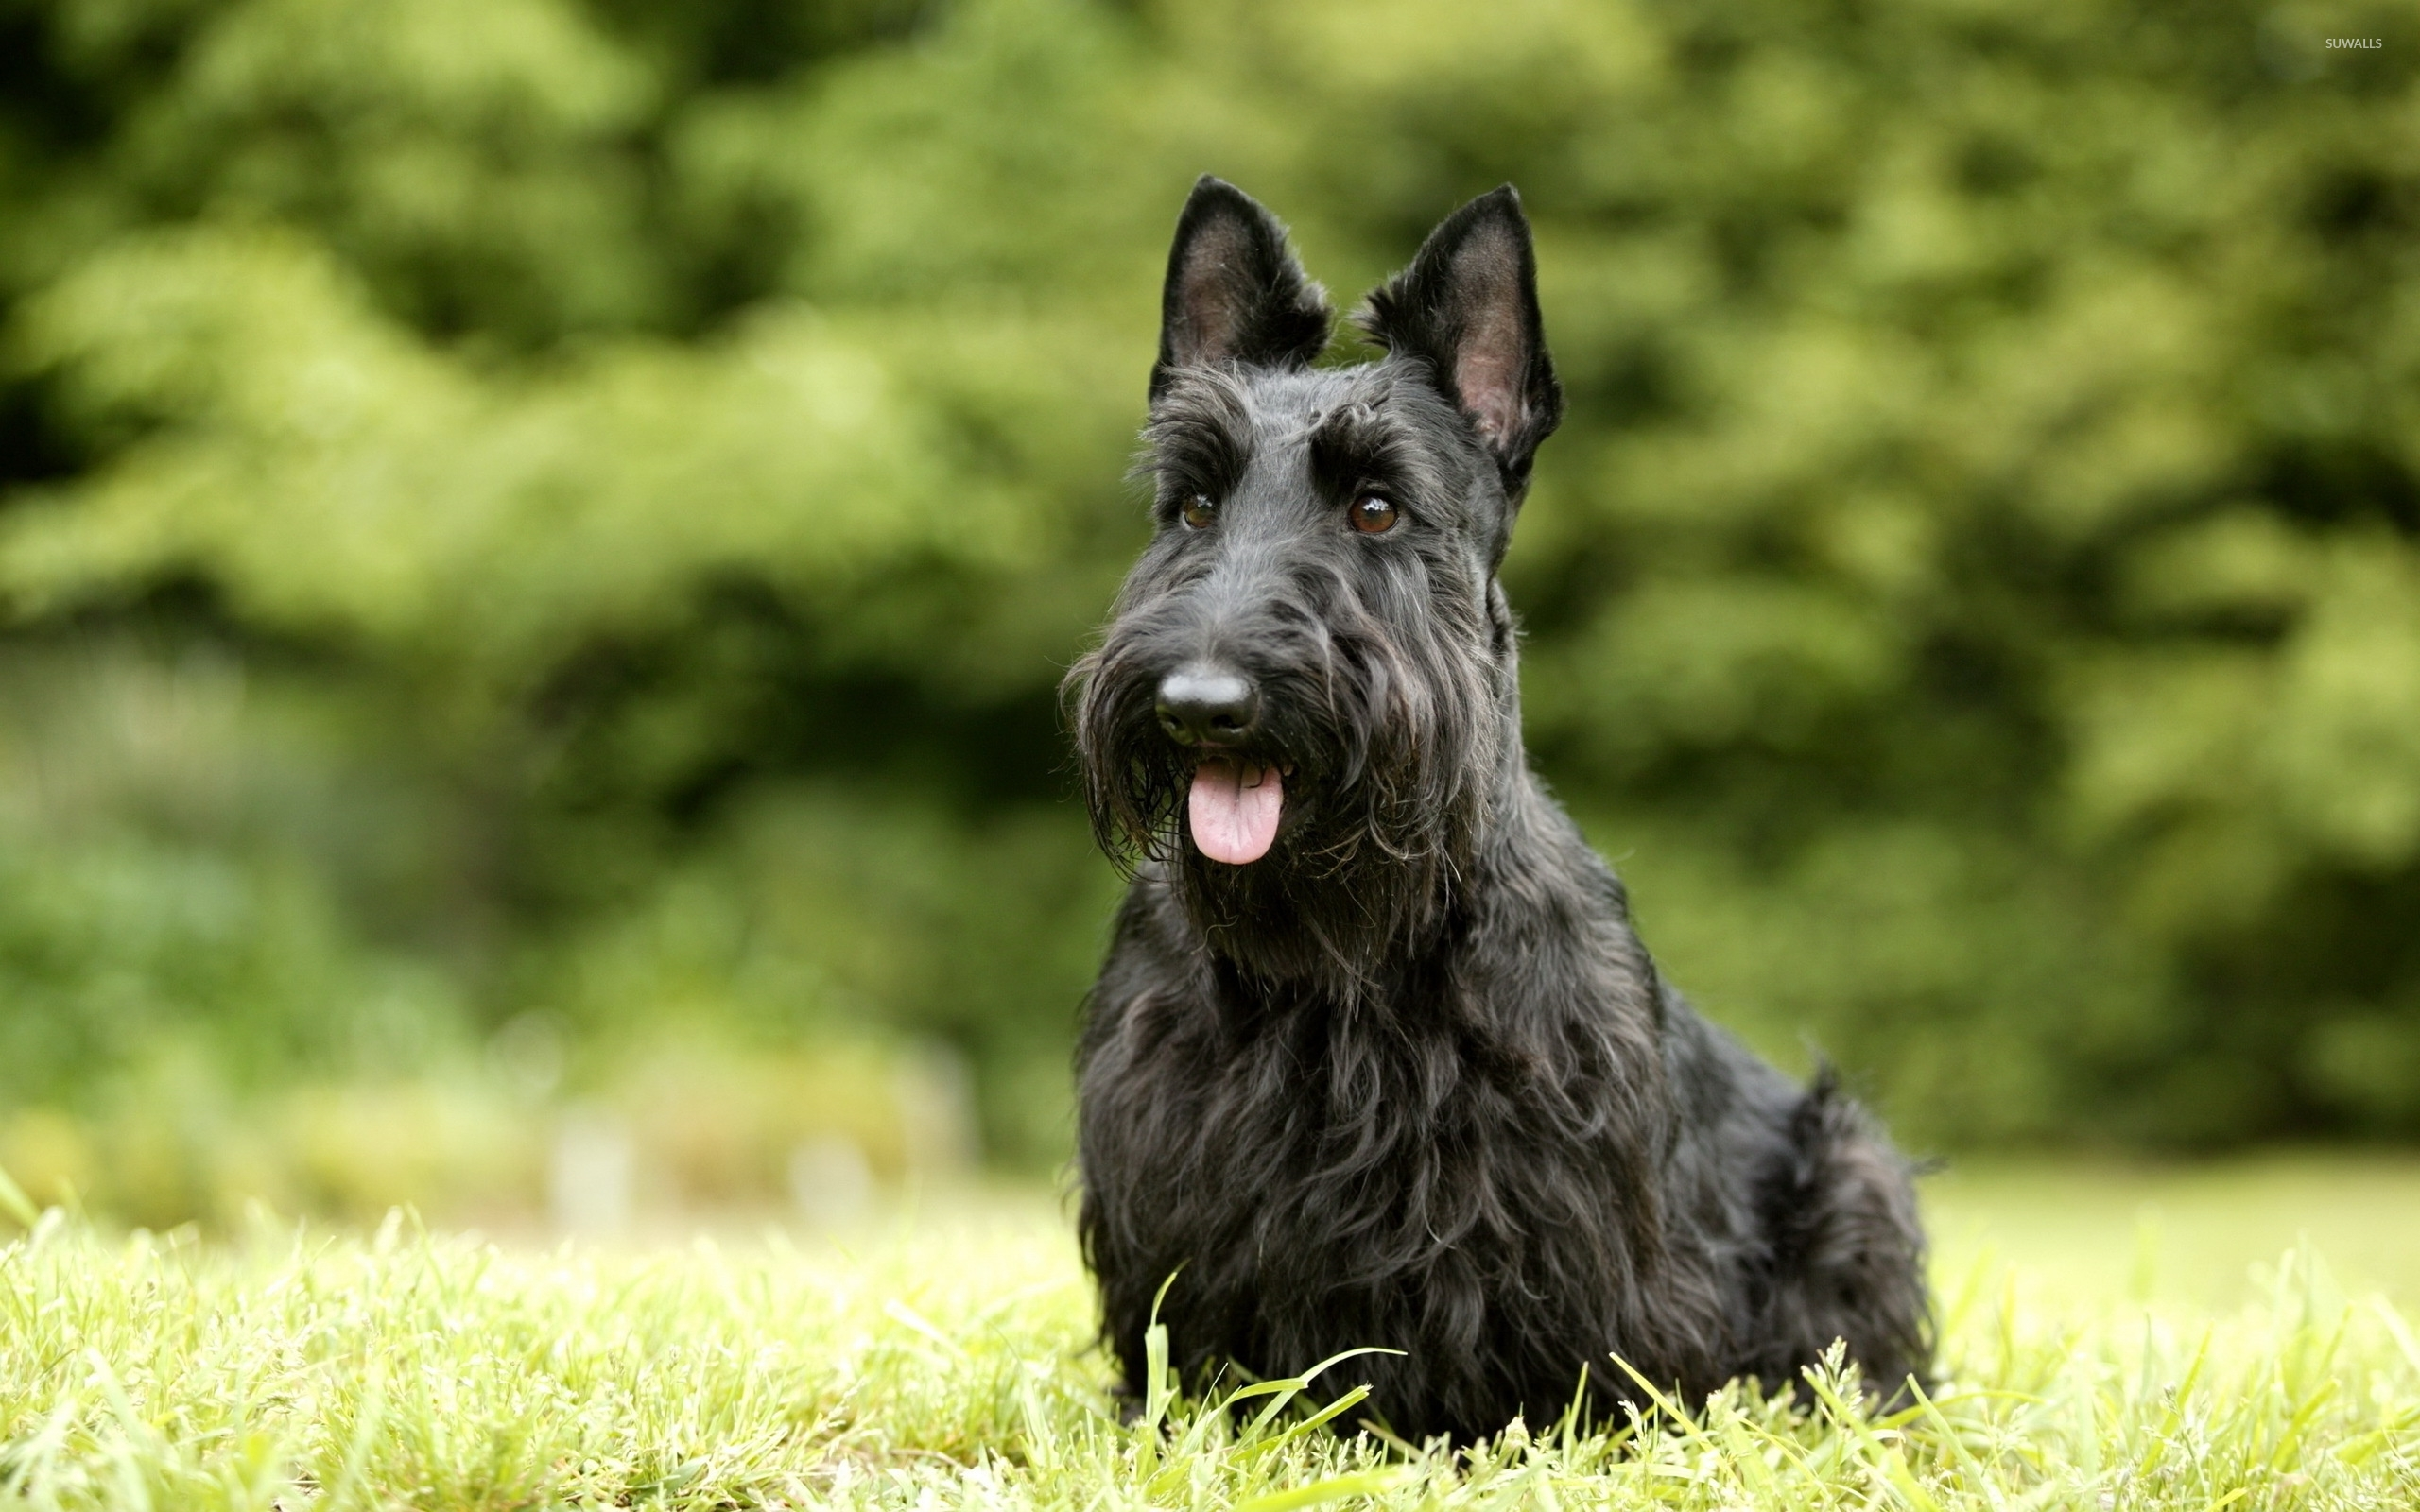 Cute Minimalistic Wallpapers Scottish Terrier Wallpaper Animal Wallpapers 45674